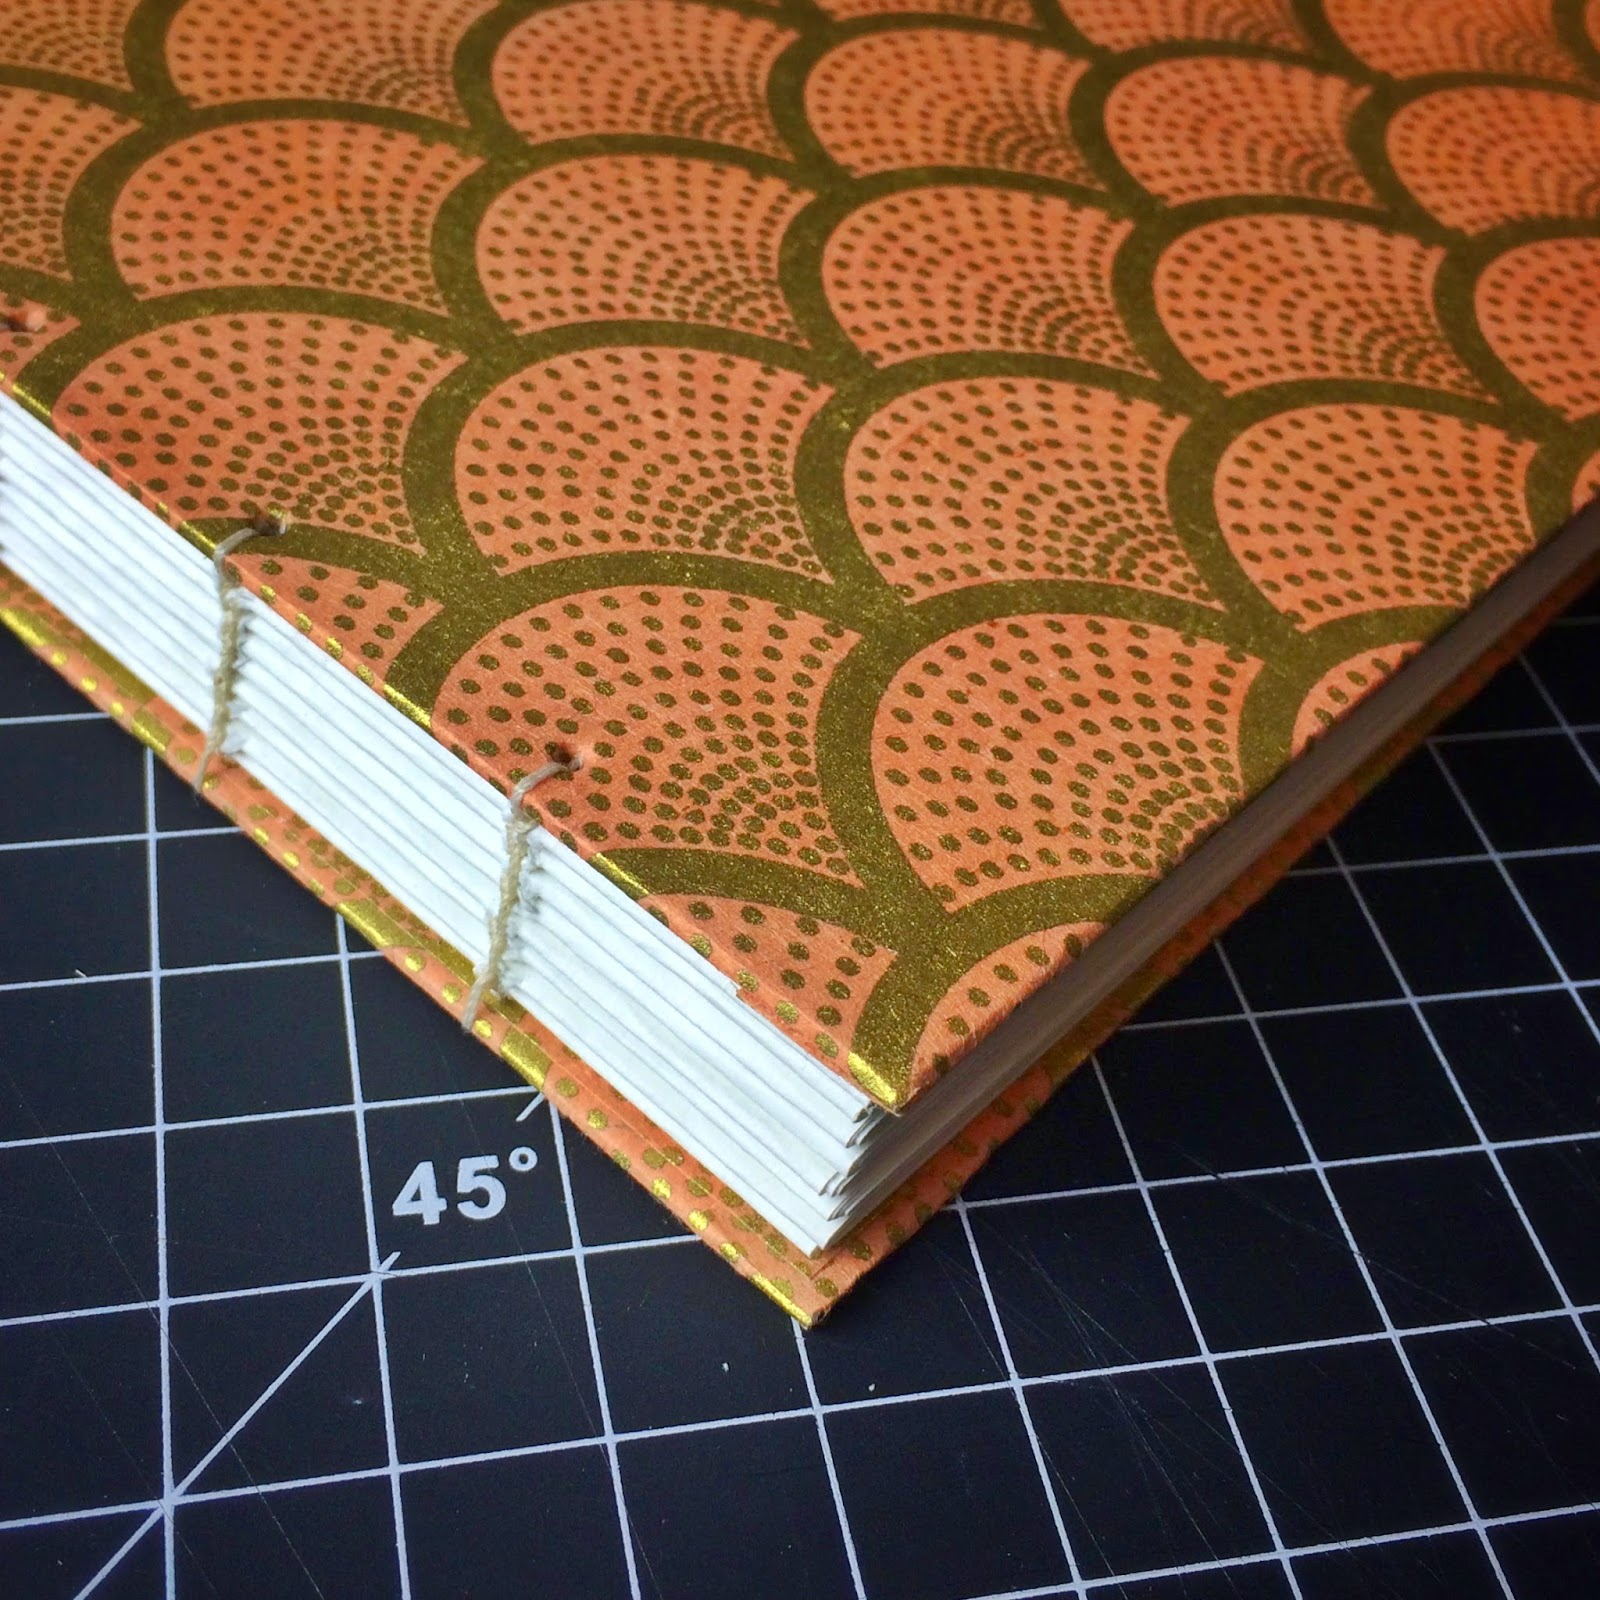 Hand binding wedding guest book using coptic binding method